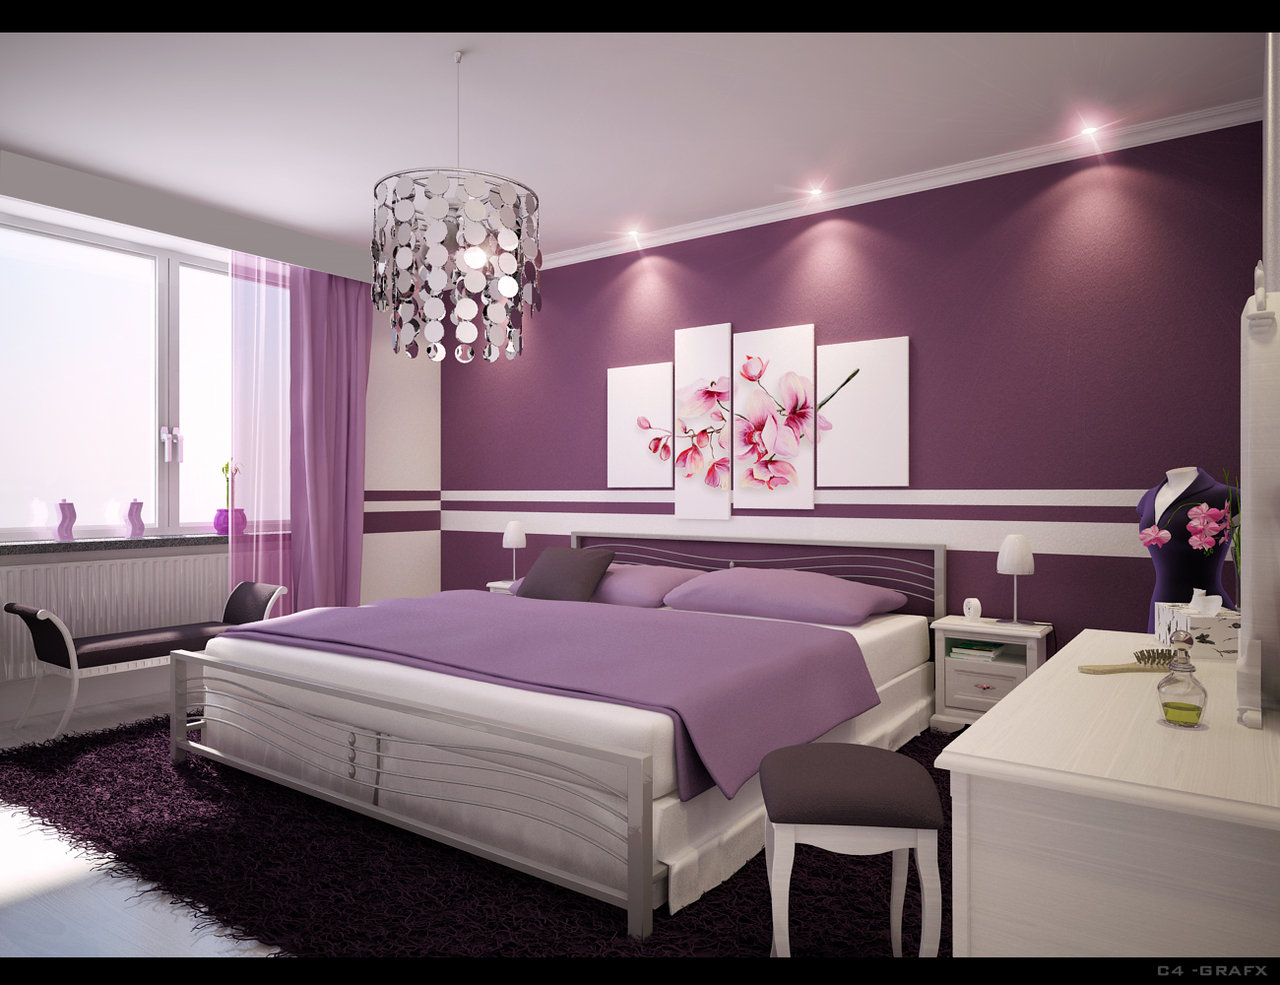 Remarkable Girls Bedroom Interior Design Ideas 1280 x 985 · 201 kB · jpeg